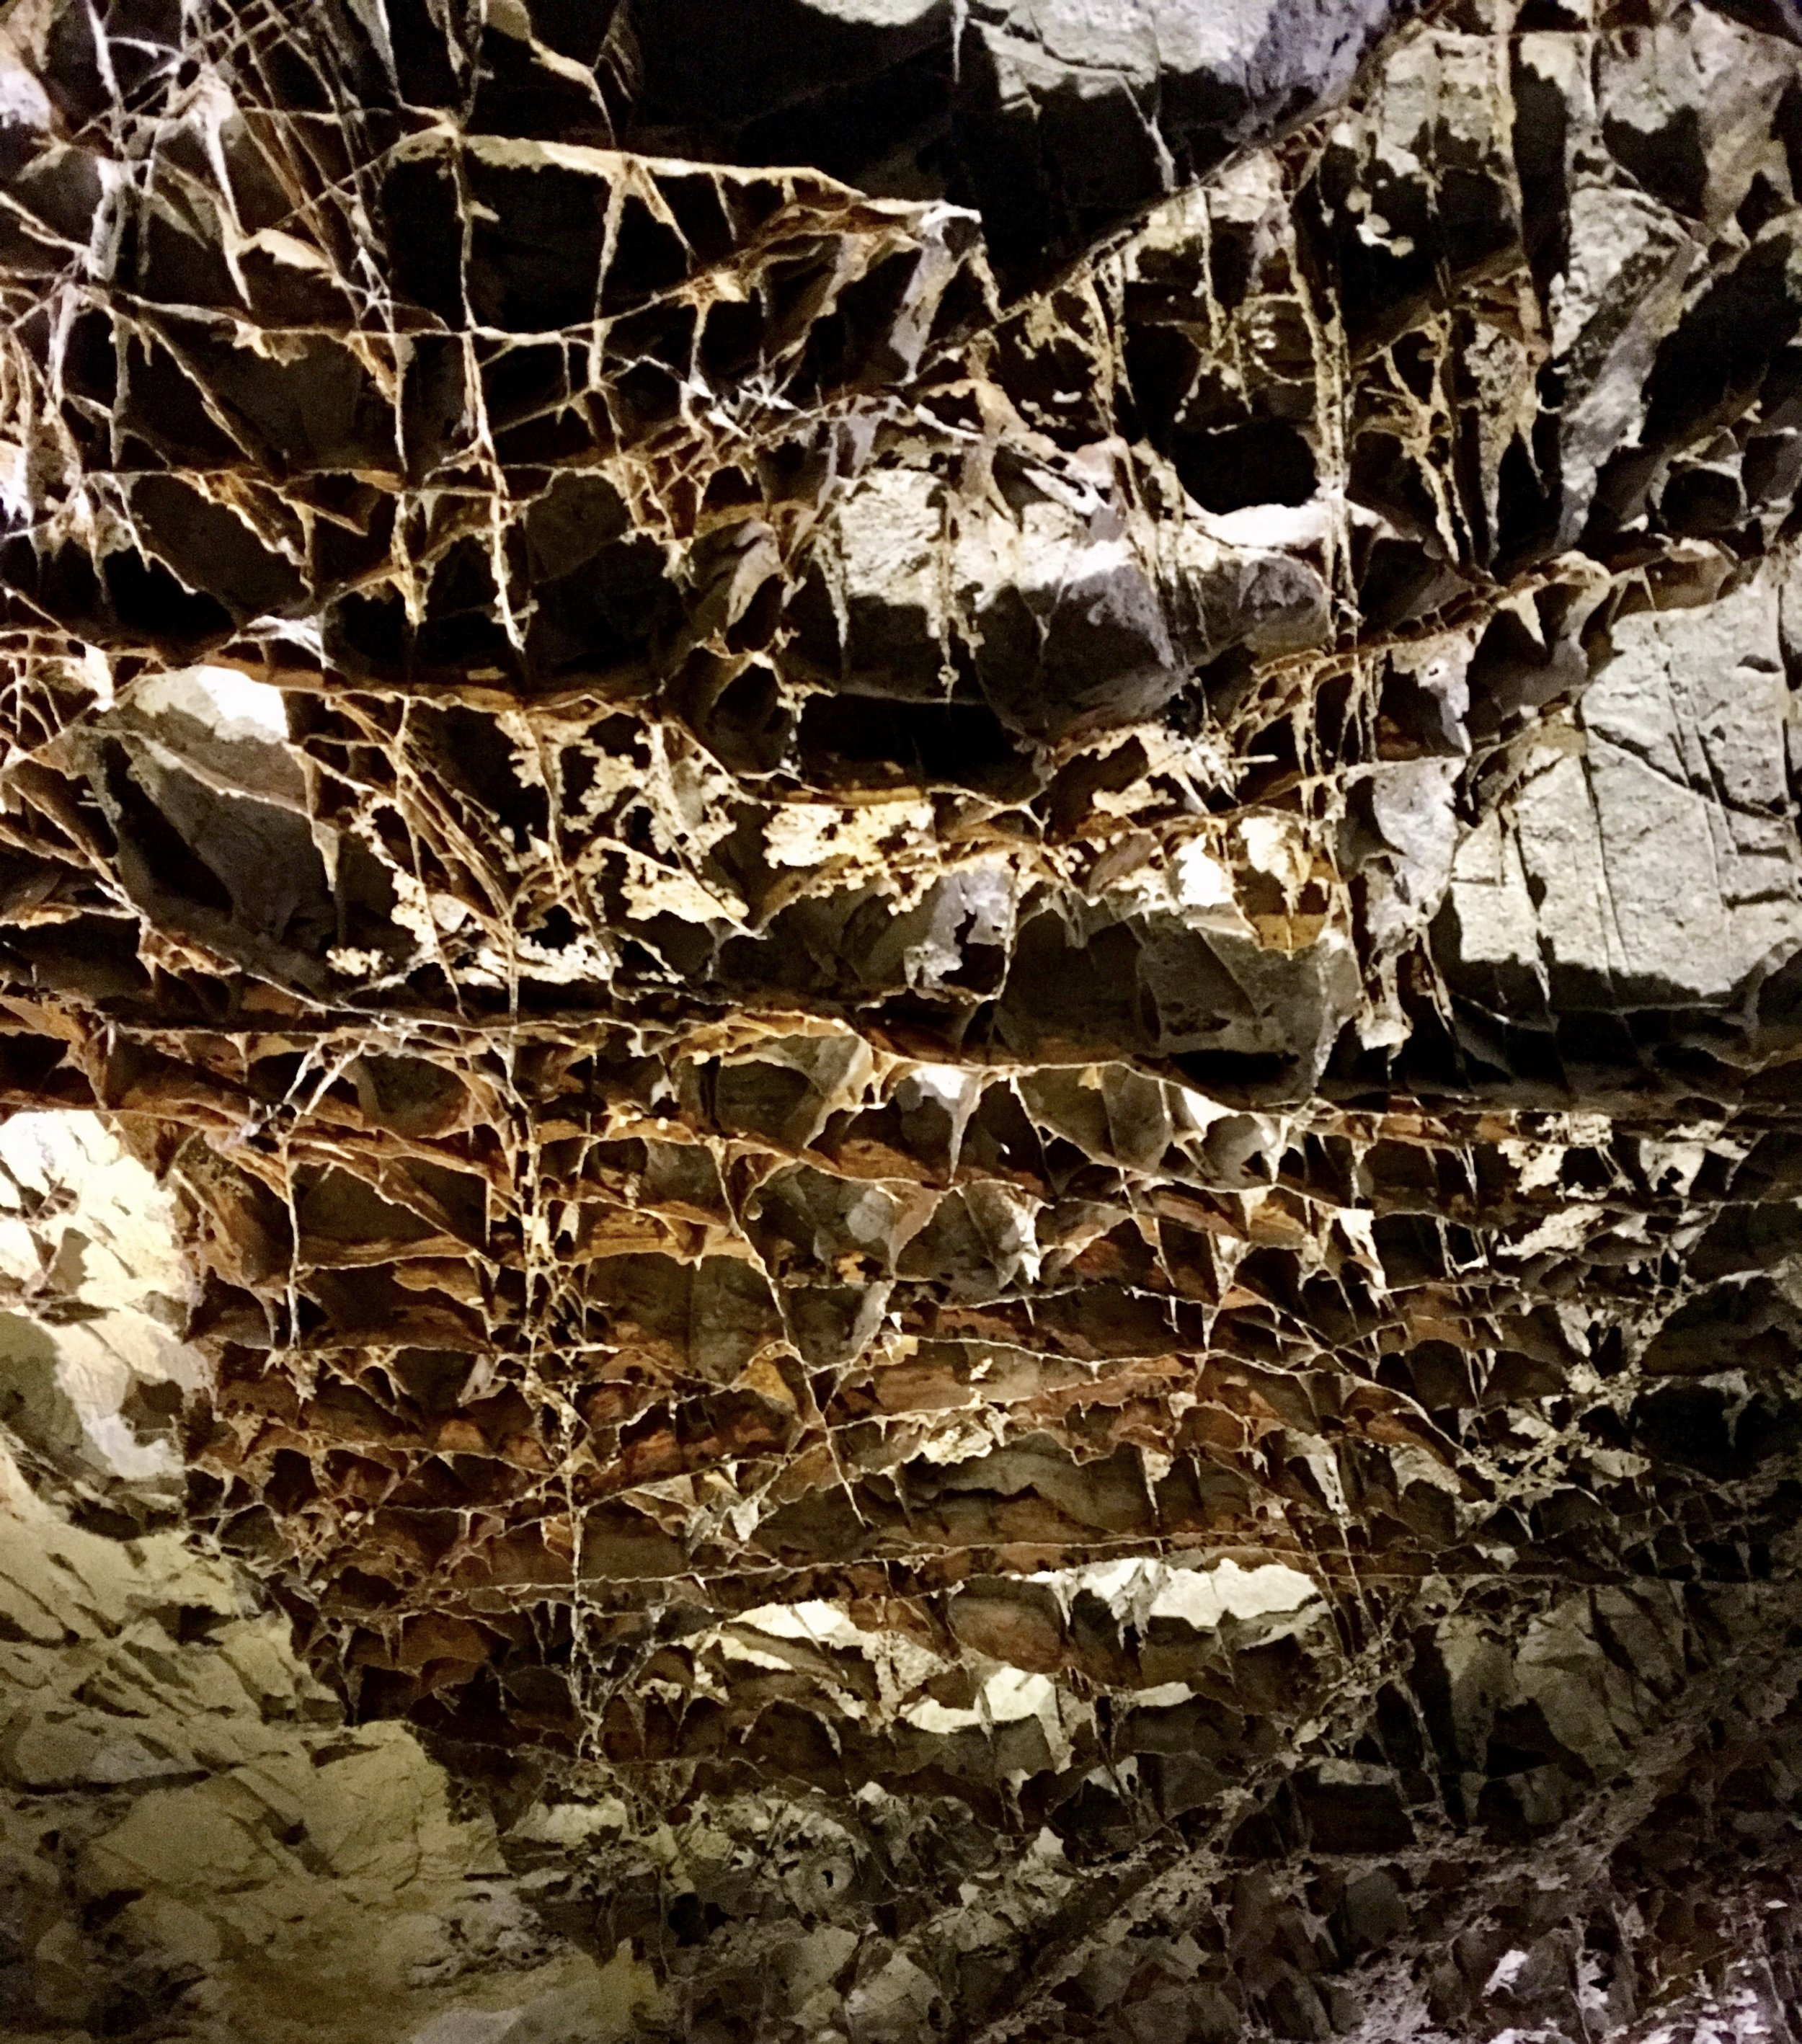 """Boxwork"" formation on the ceiling of the cave"